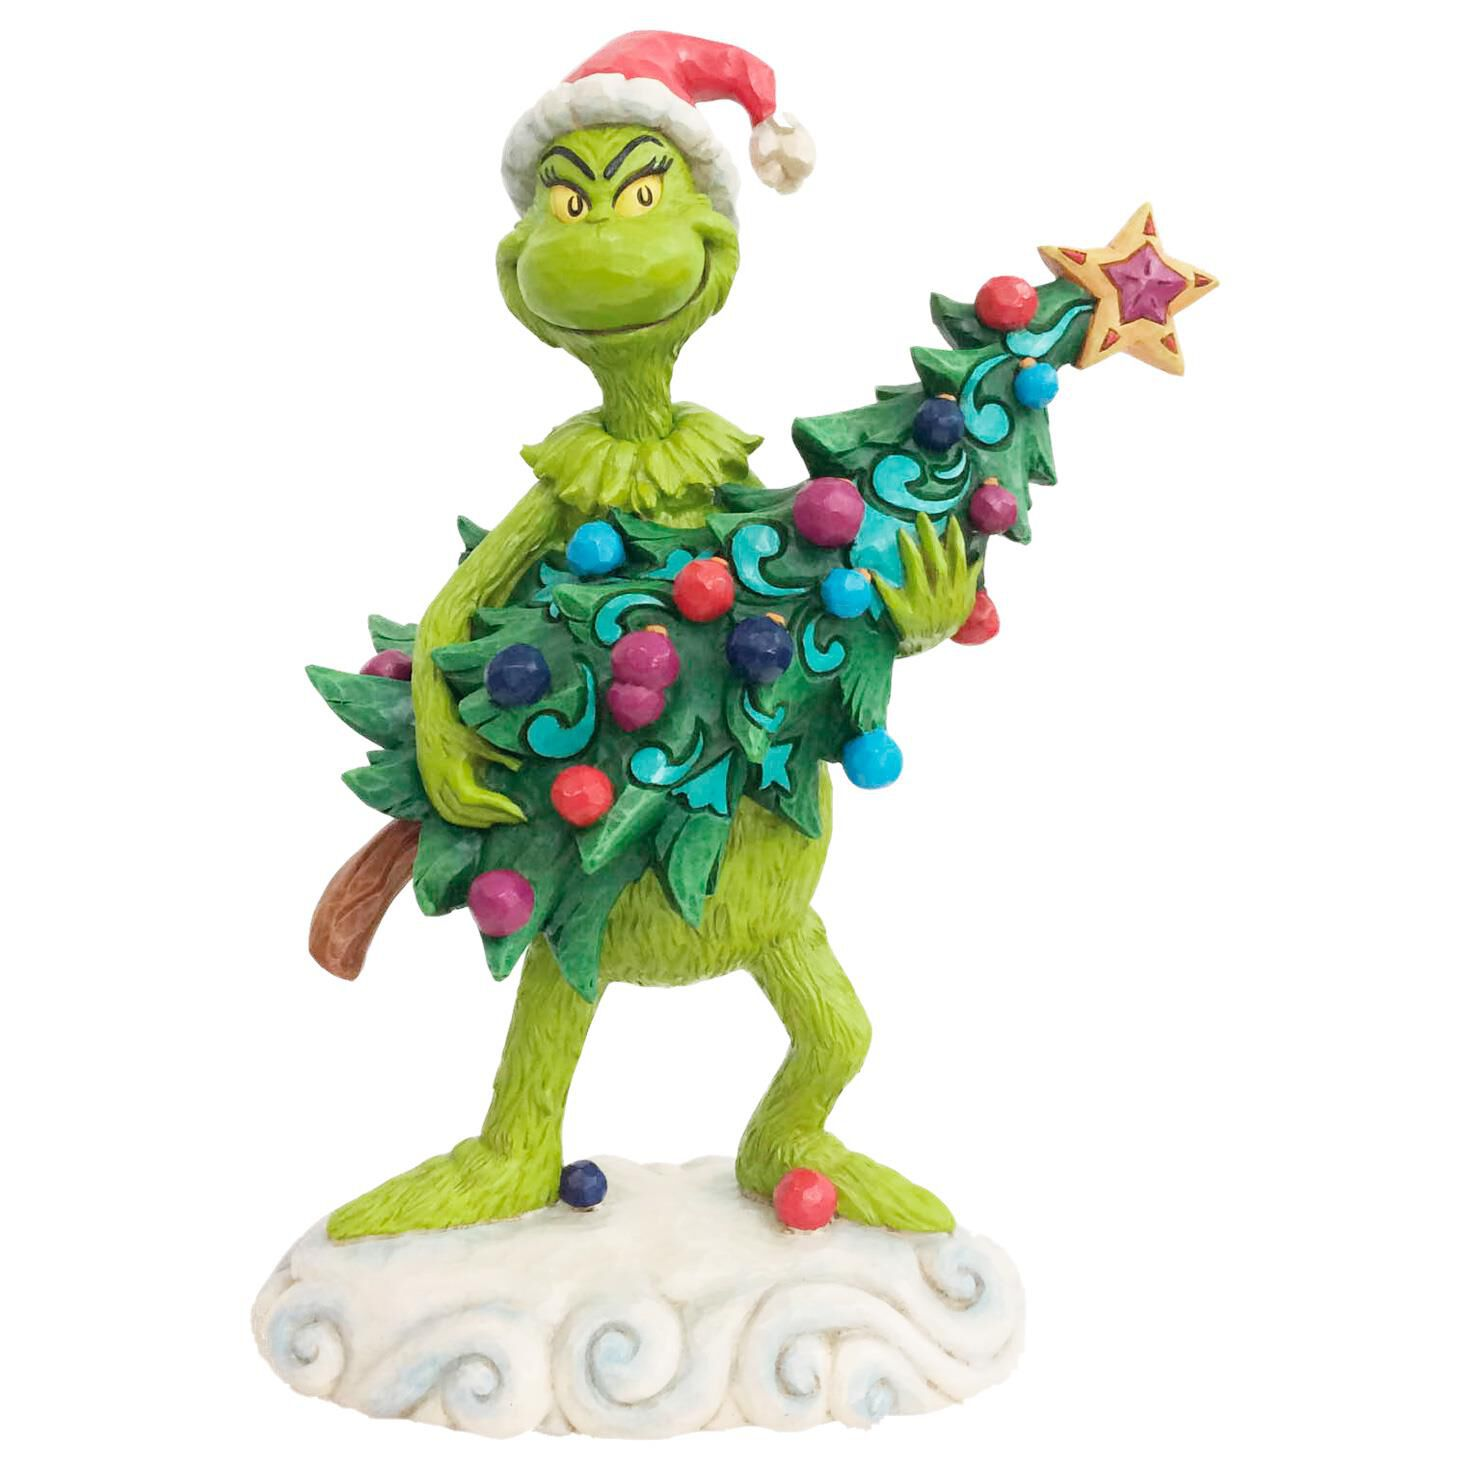 jim shore grinch stealing christmas tree figurine 85 figurines hallmark - Stealing Christmas